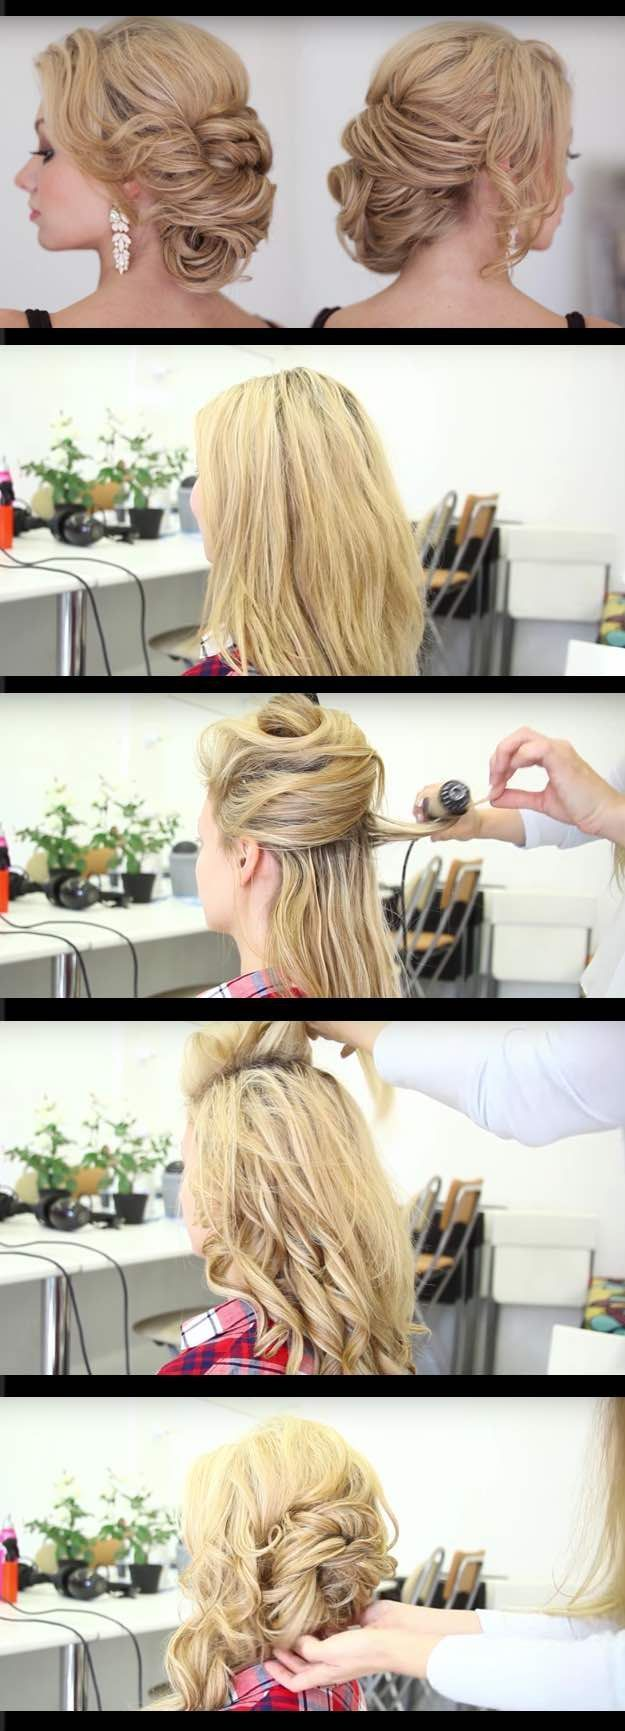 Easy step by step hairstyles for school quick and easy updo